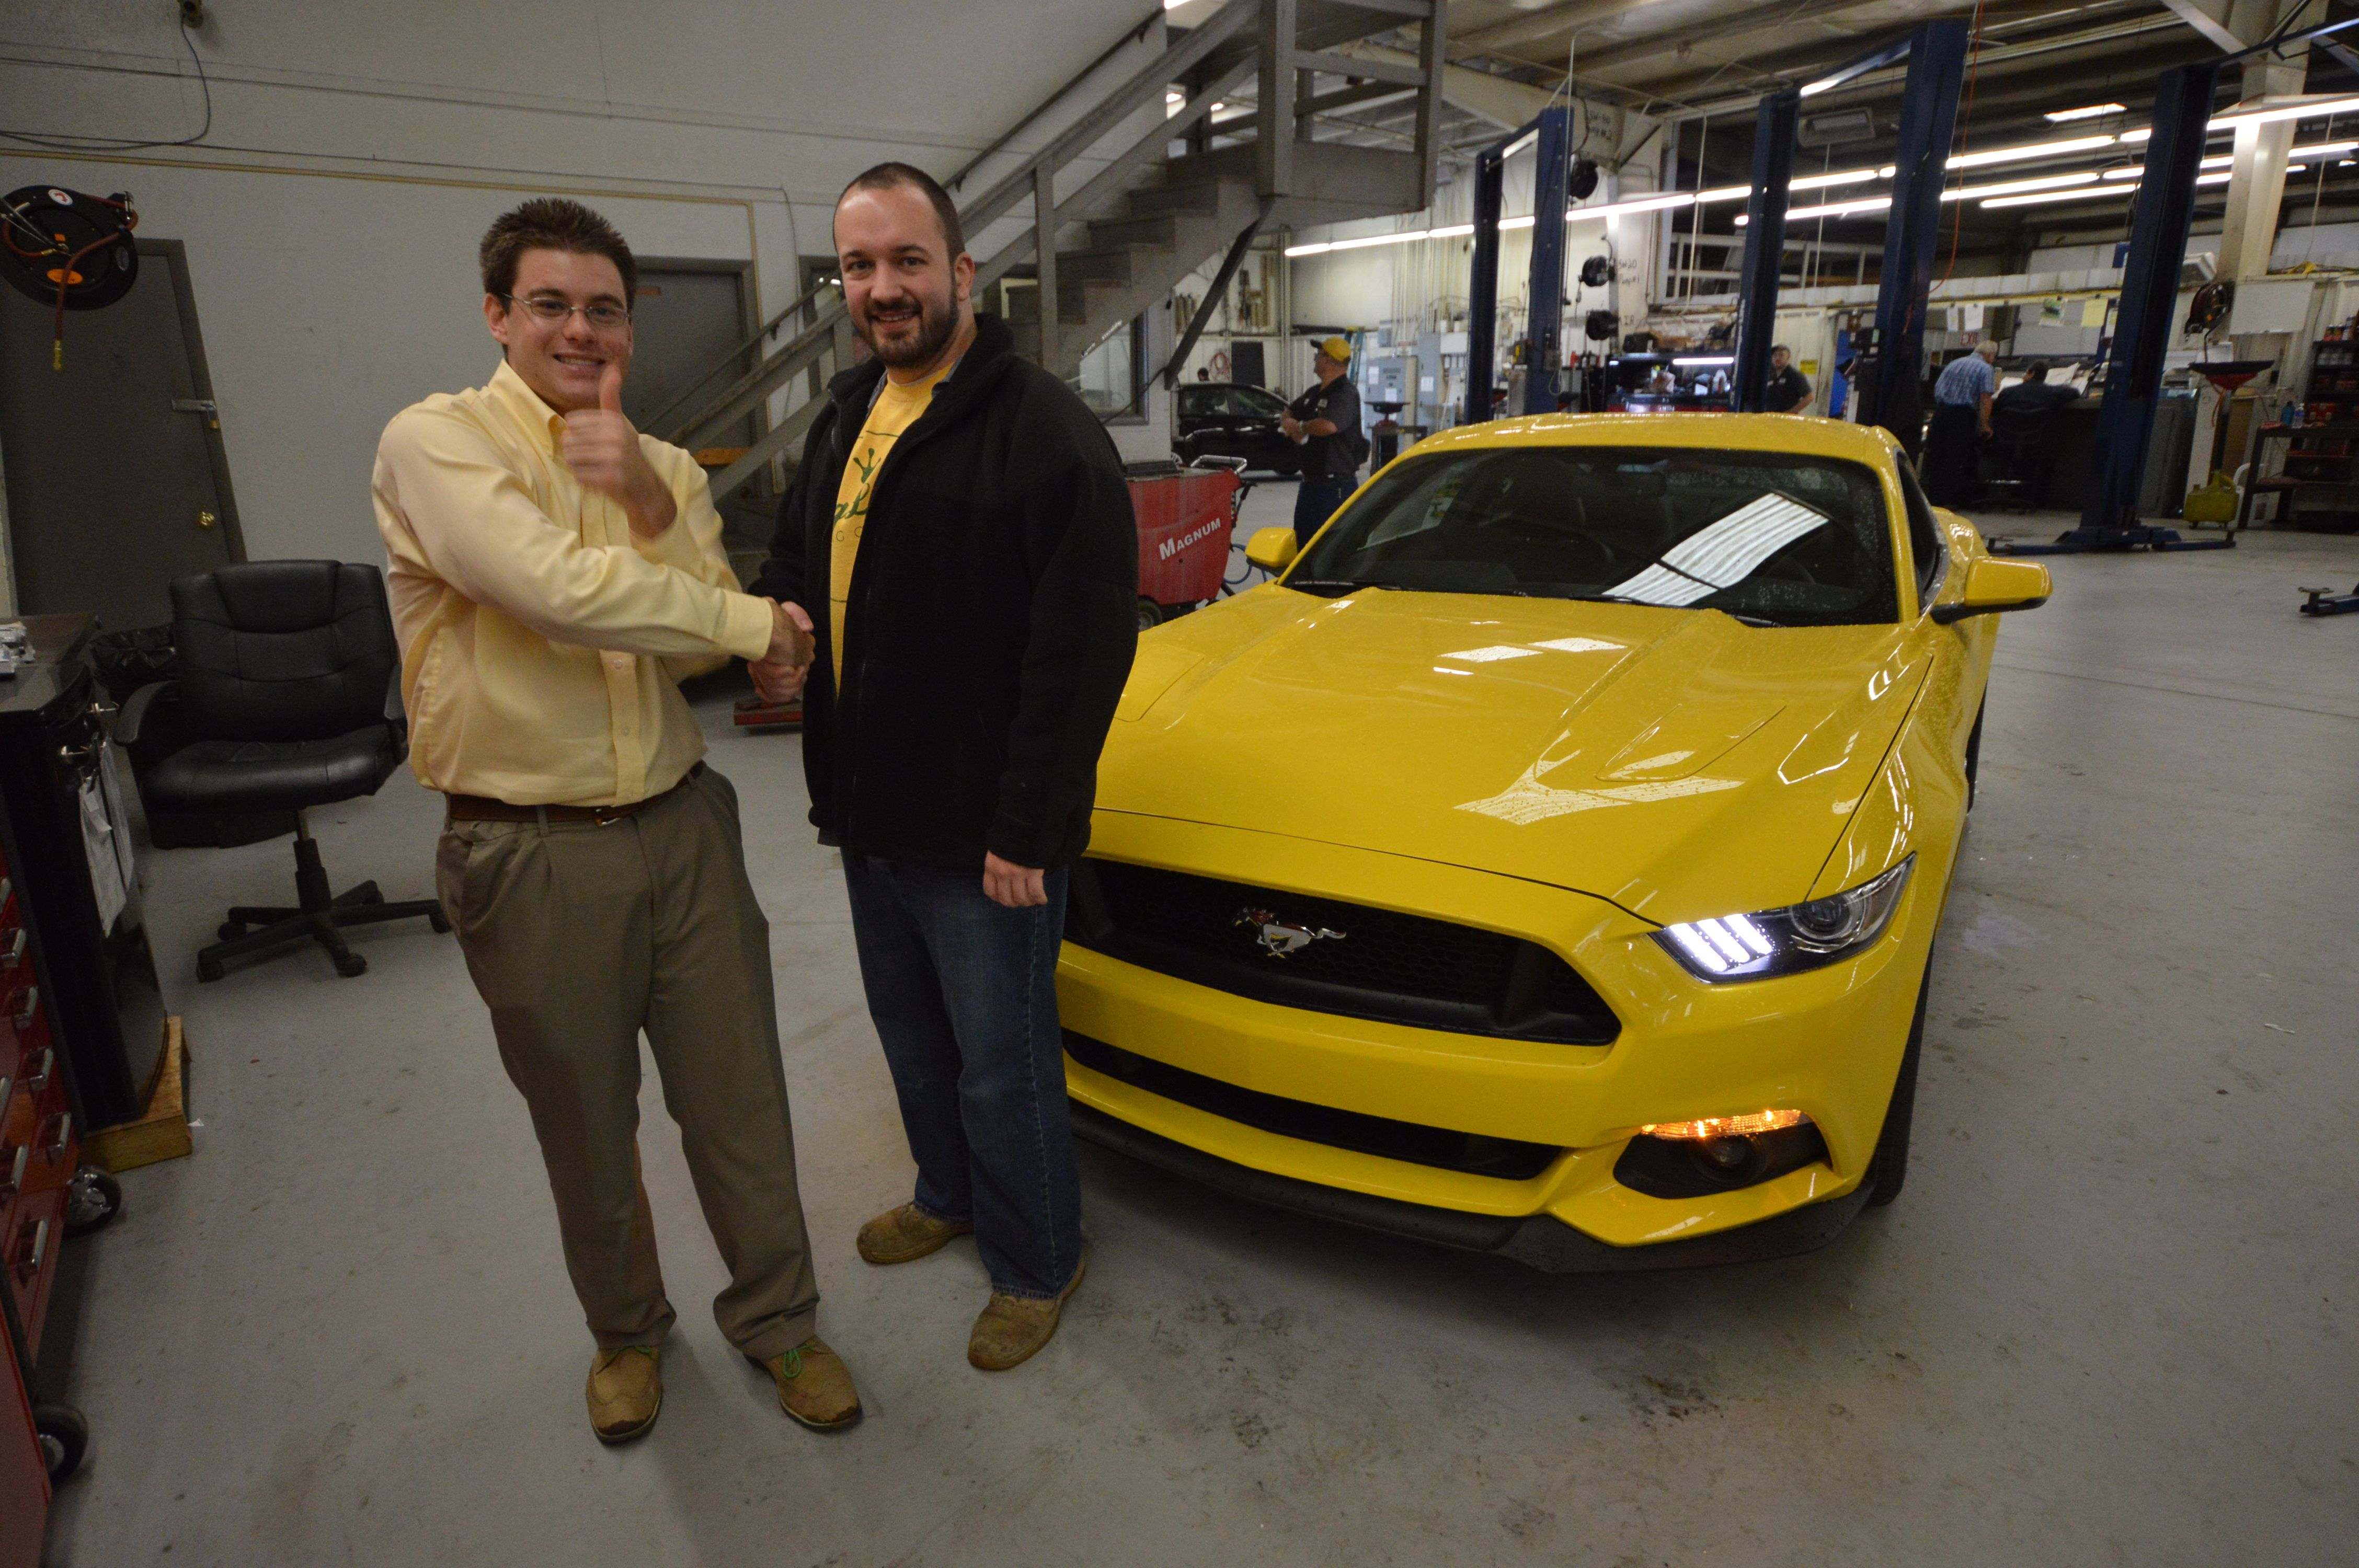 Straight from the truck to his driveway This Triple Yellow Mustang